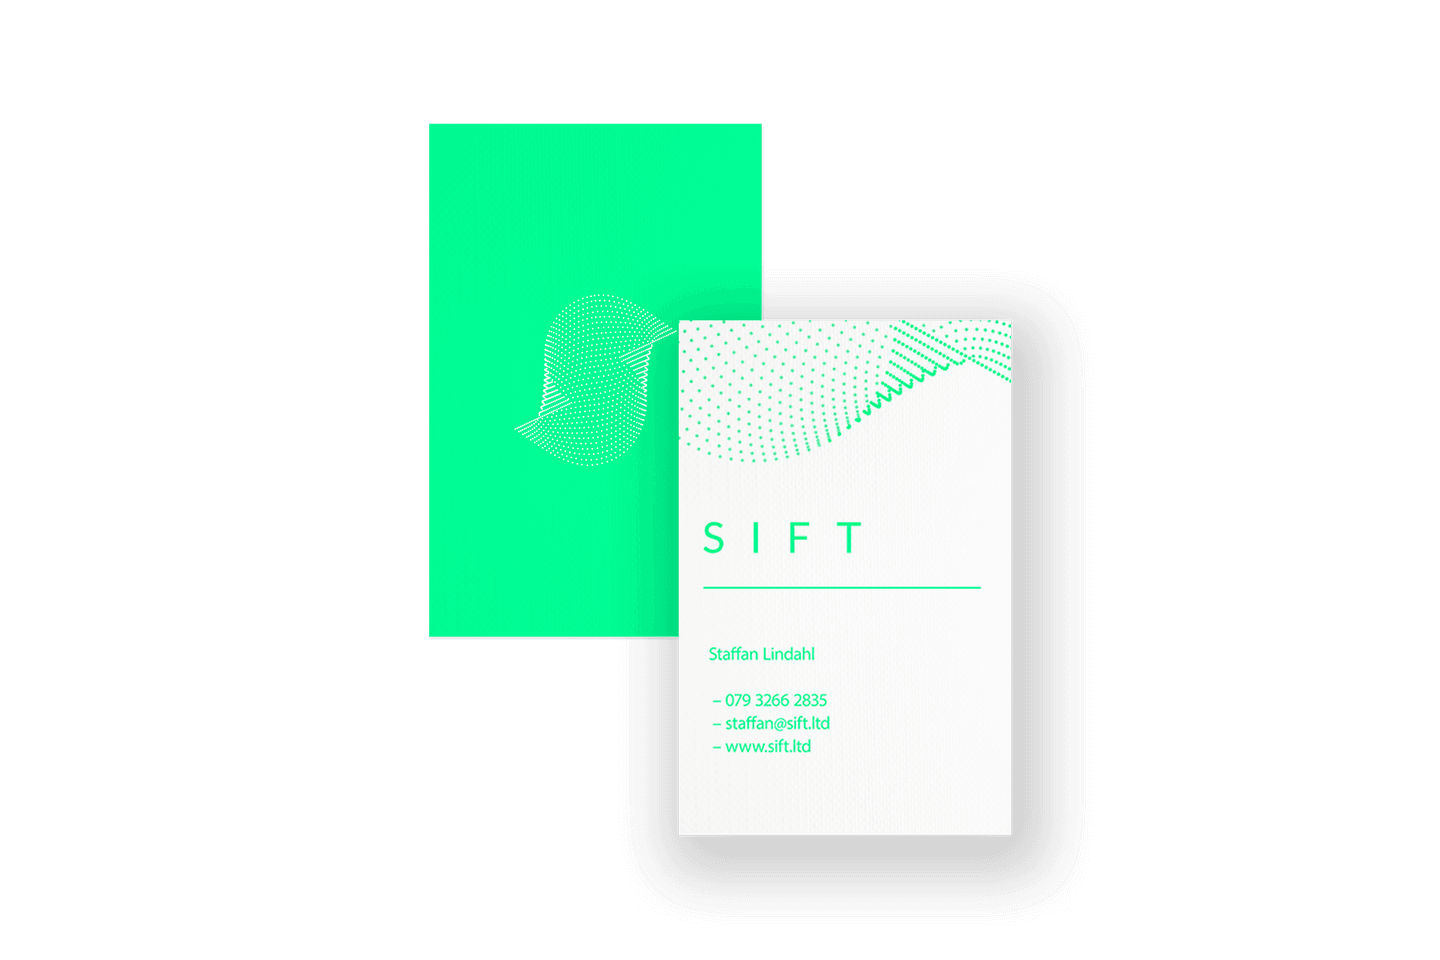 Sift business card design